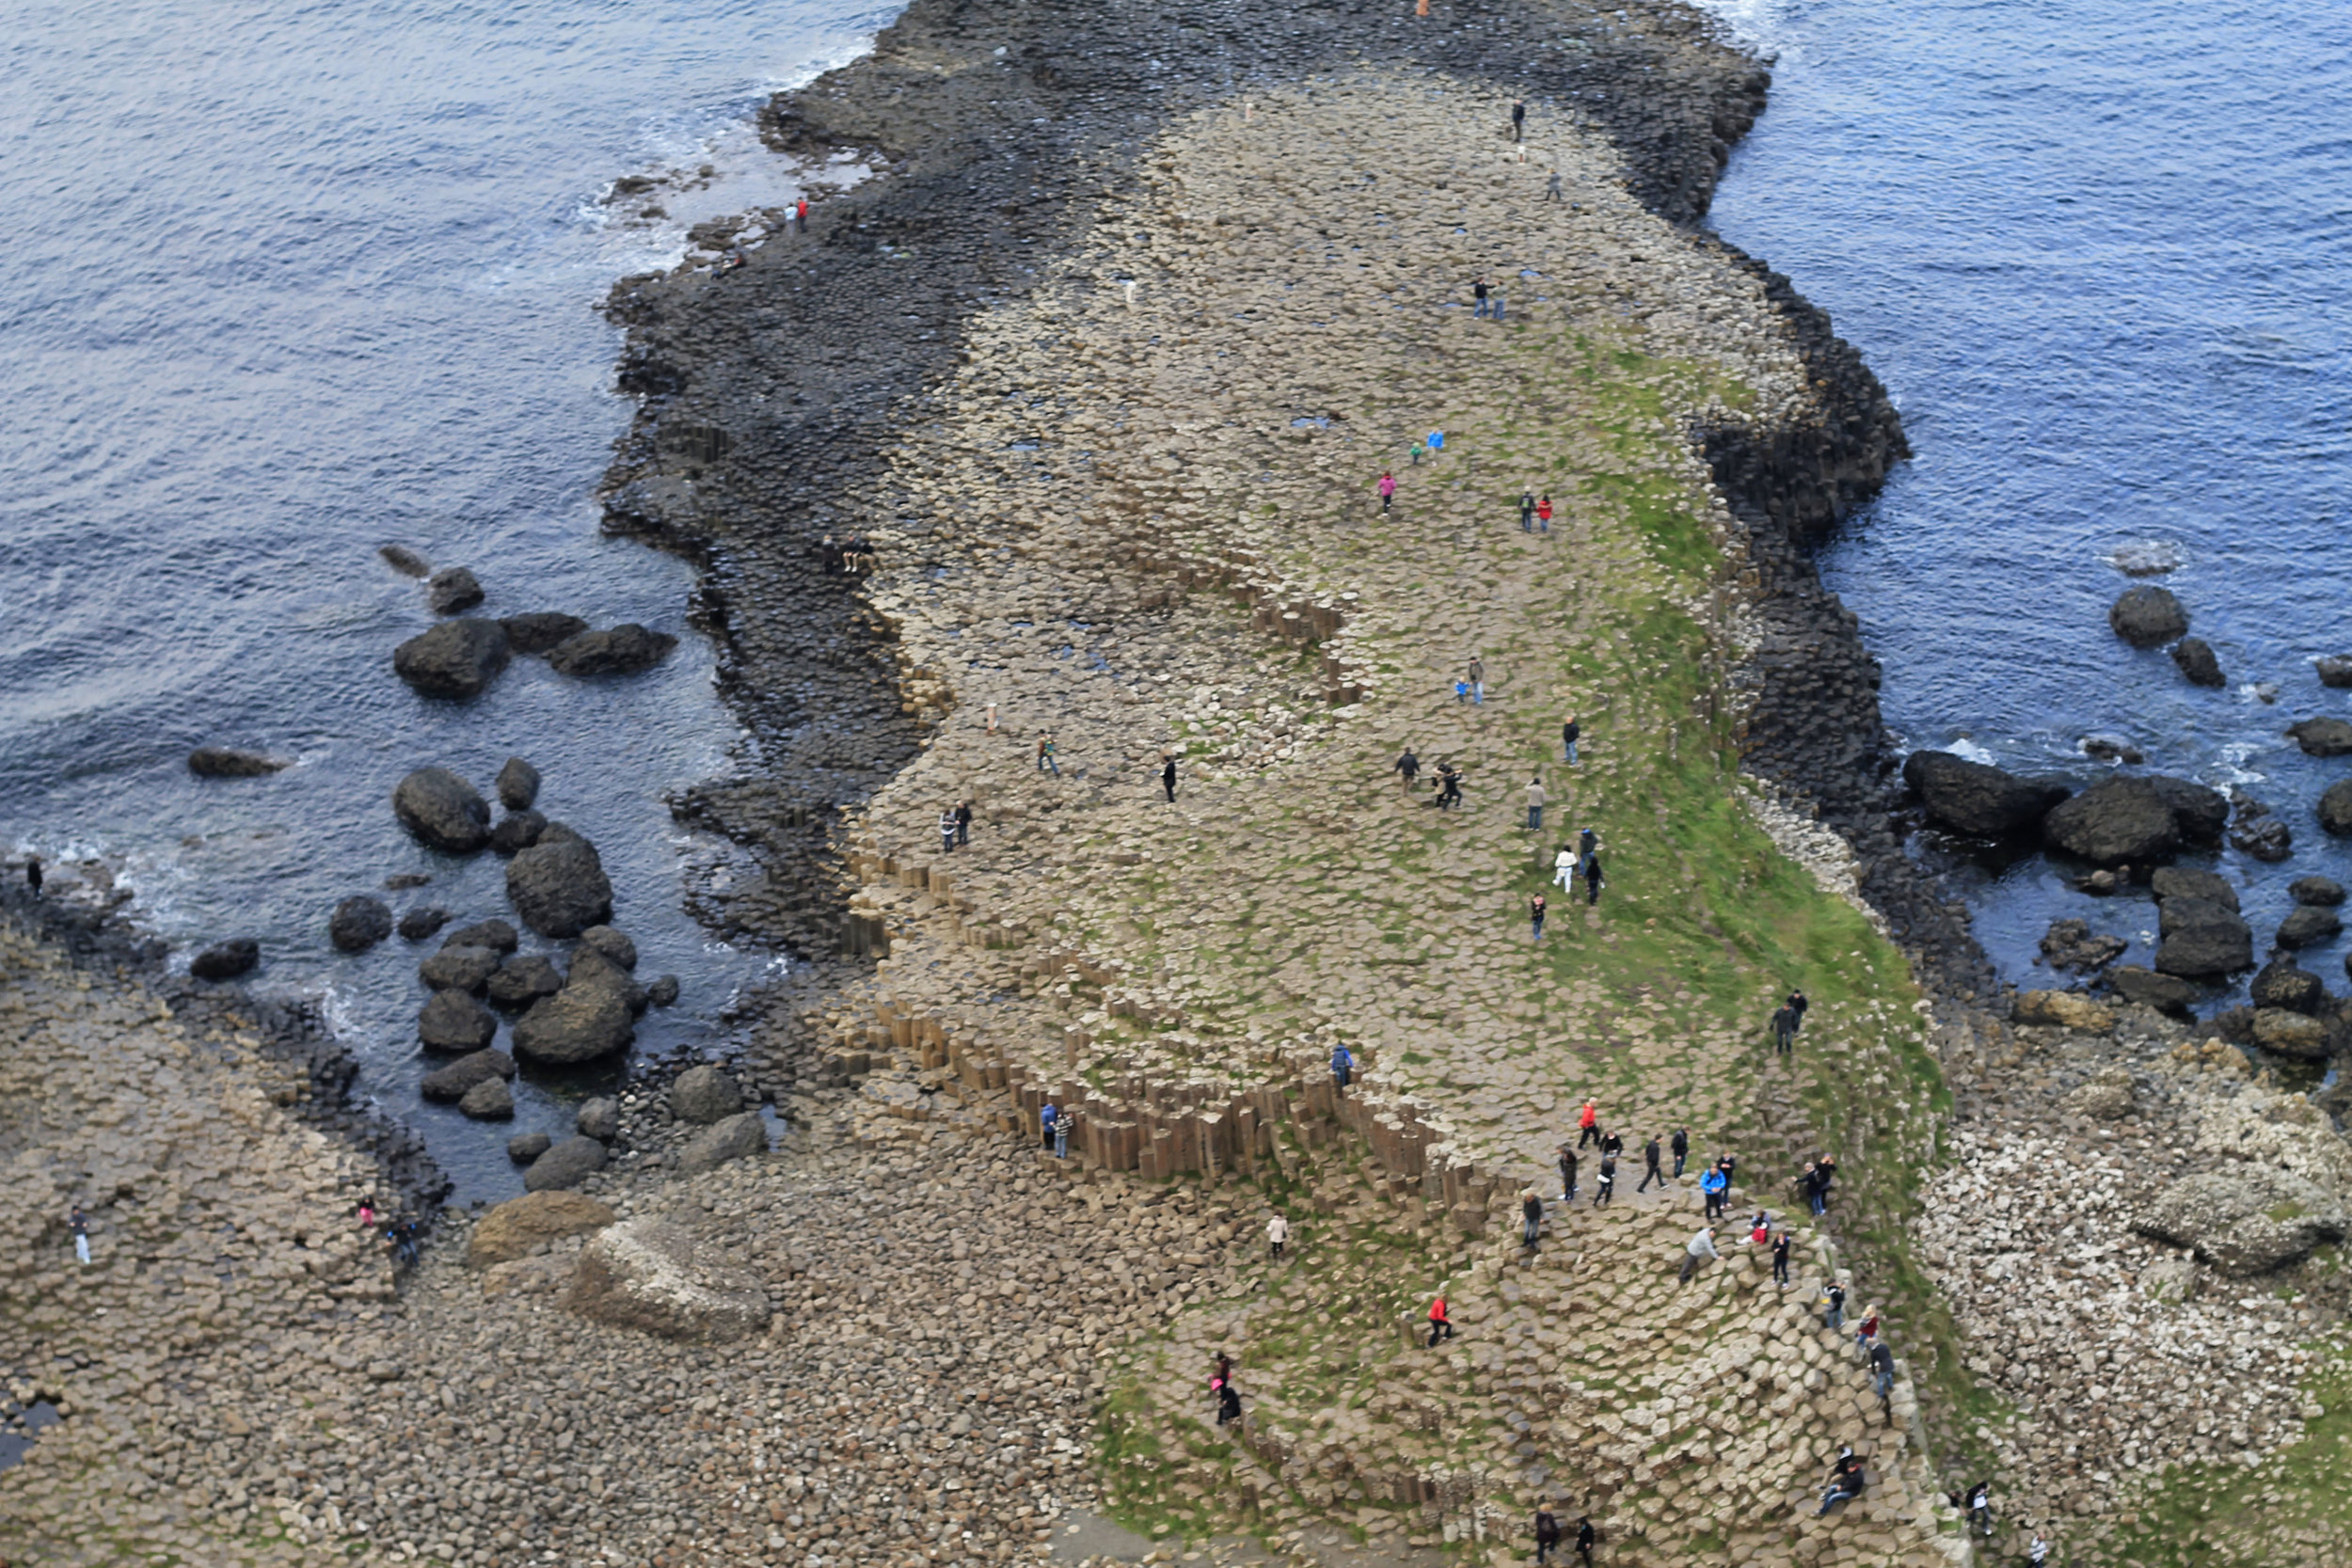 Bird's eye view of Giant's Causeway.